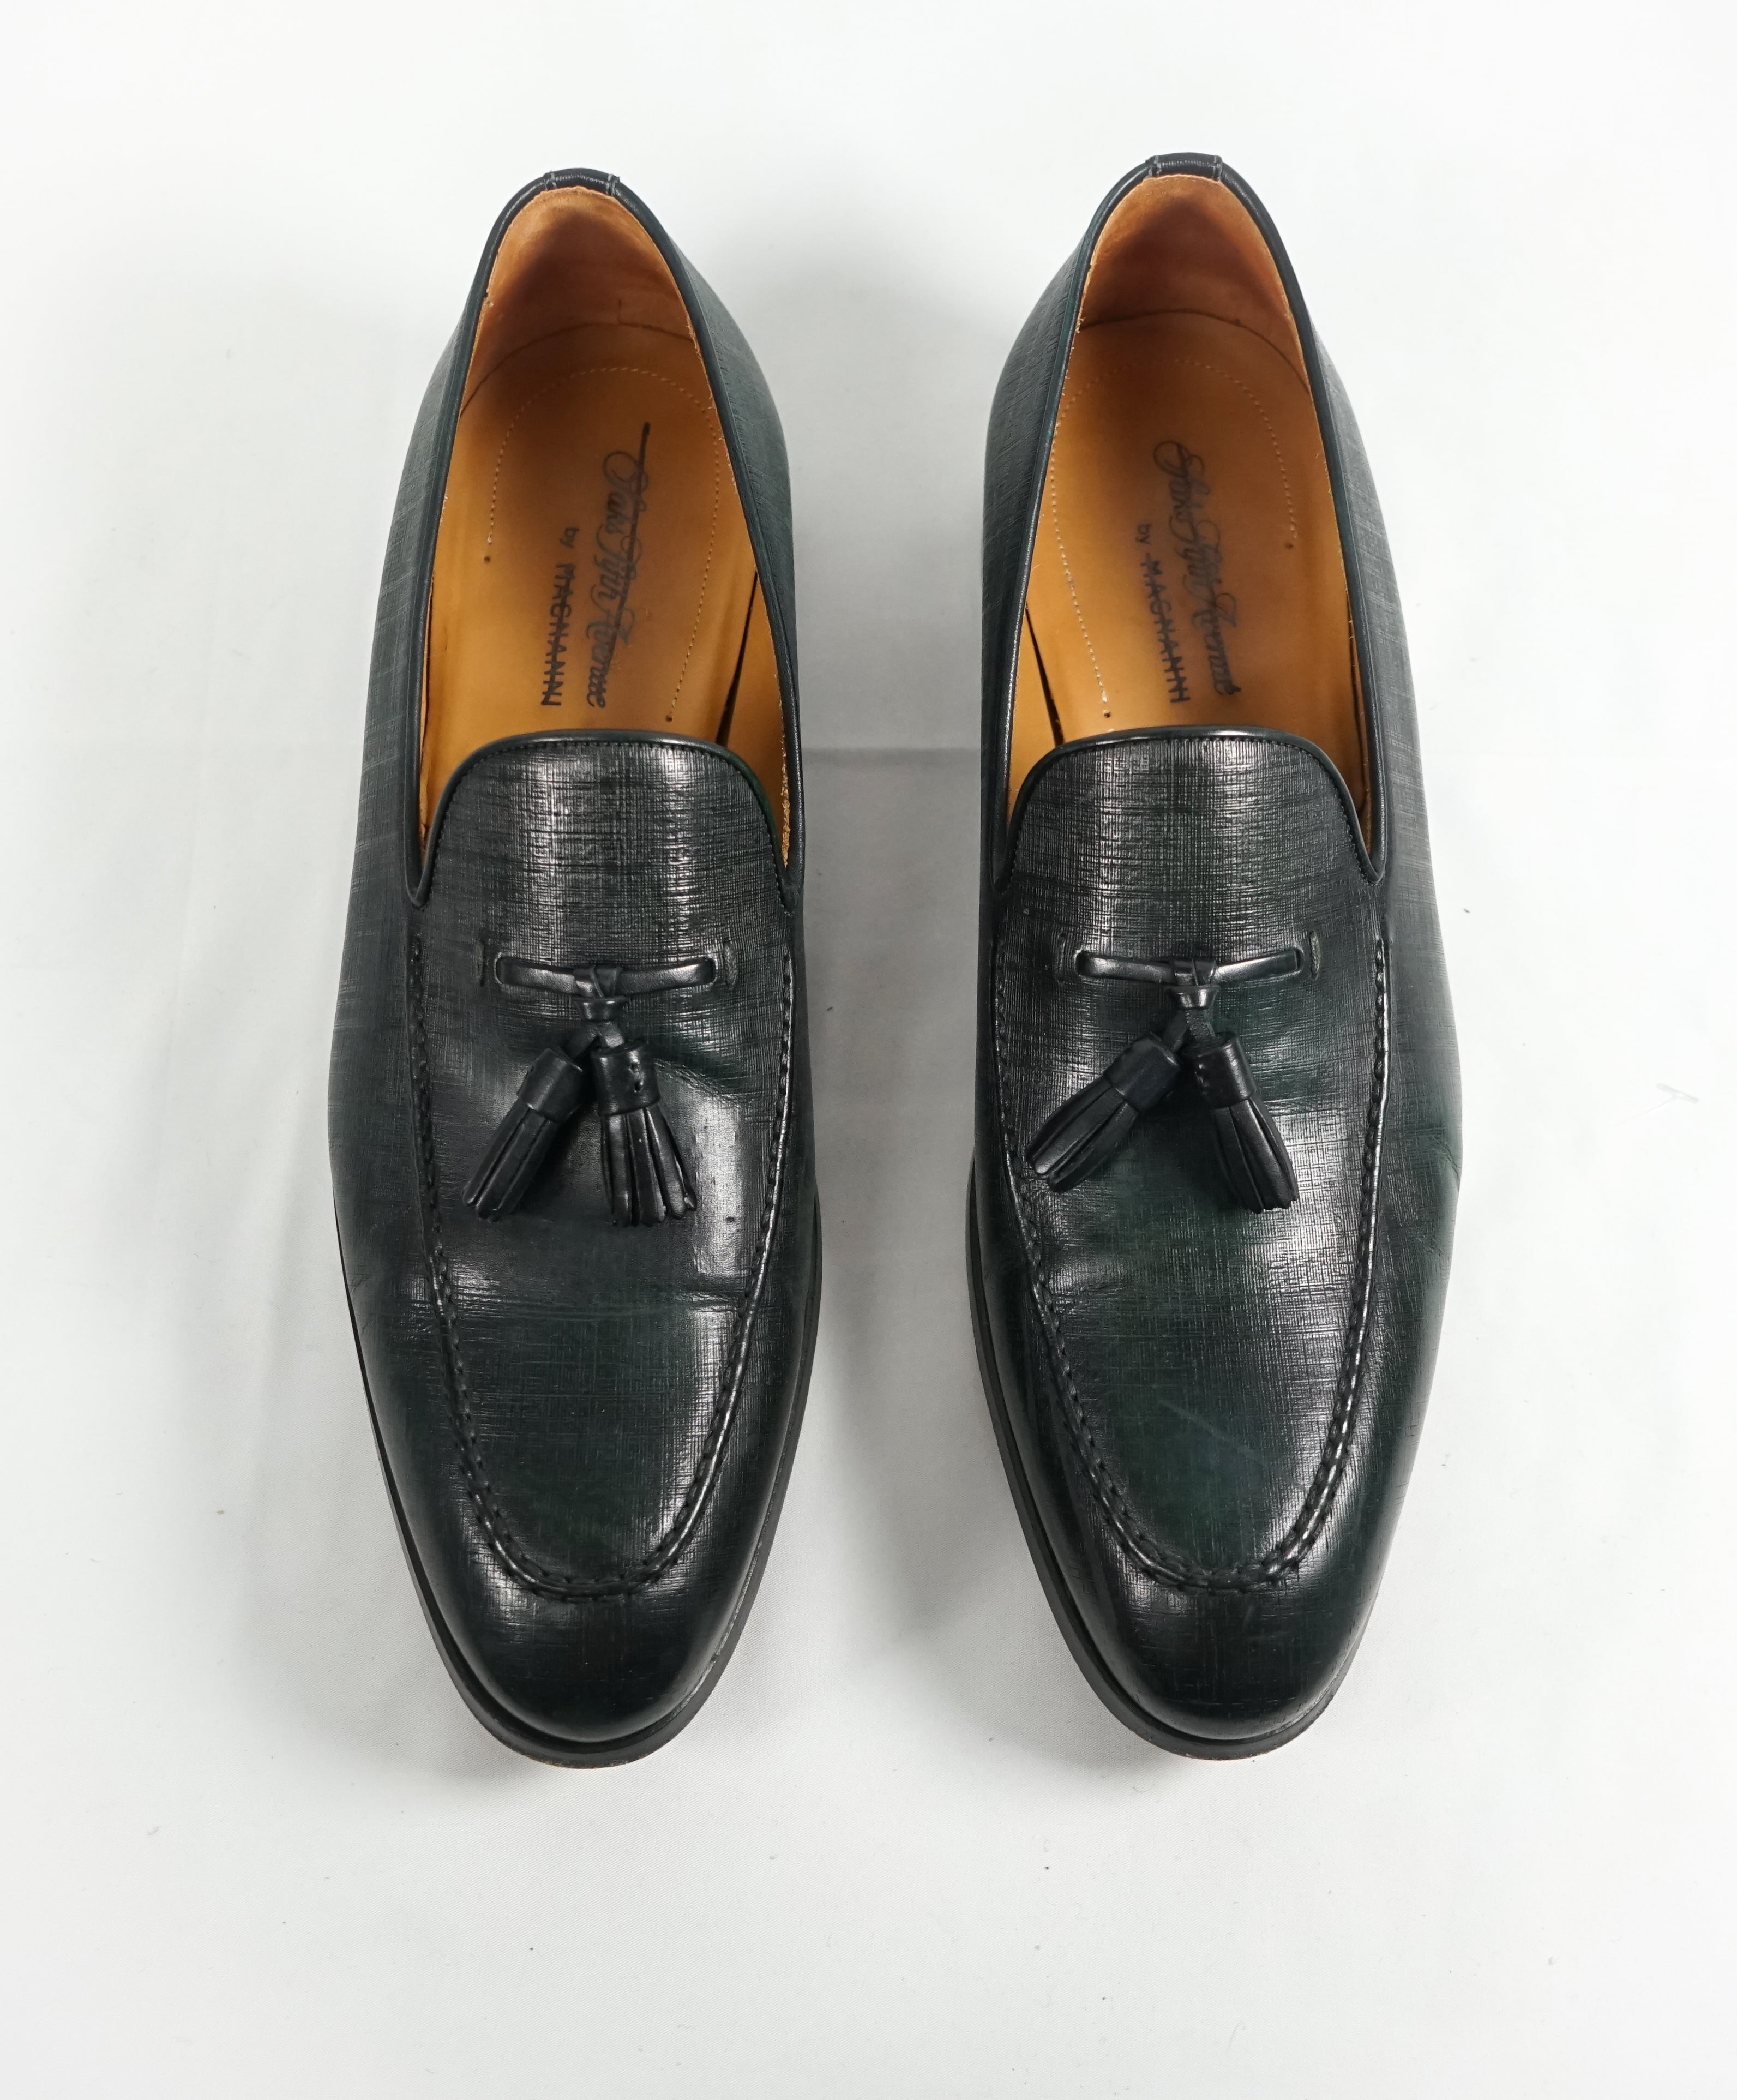 MAGNANNI For SAKS FIFTH AVENUE- Green Saffiano Tassel Loafers - 10